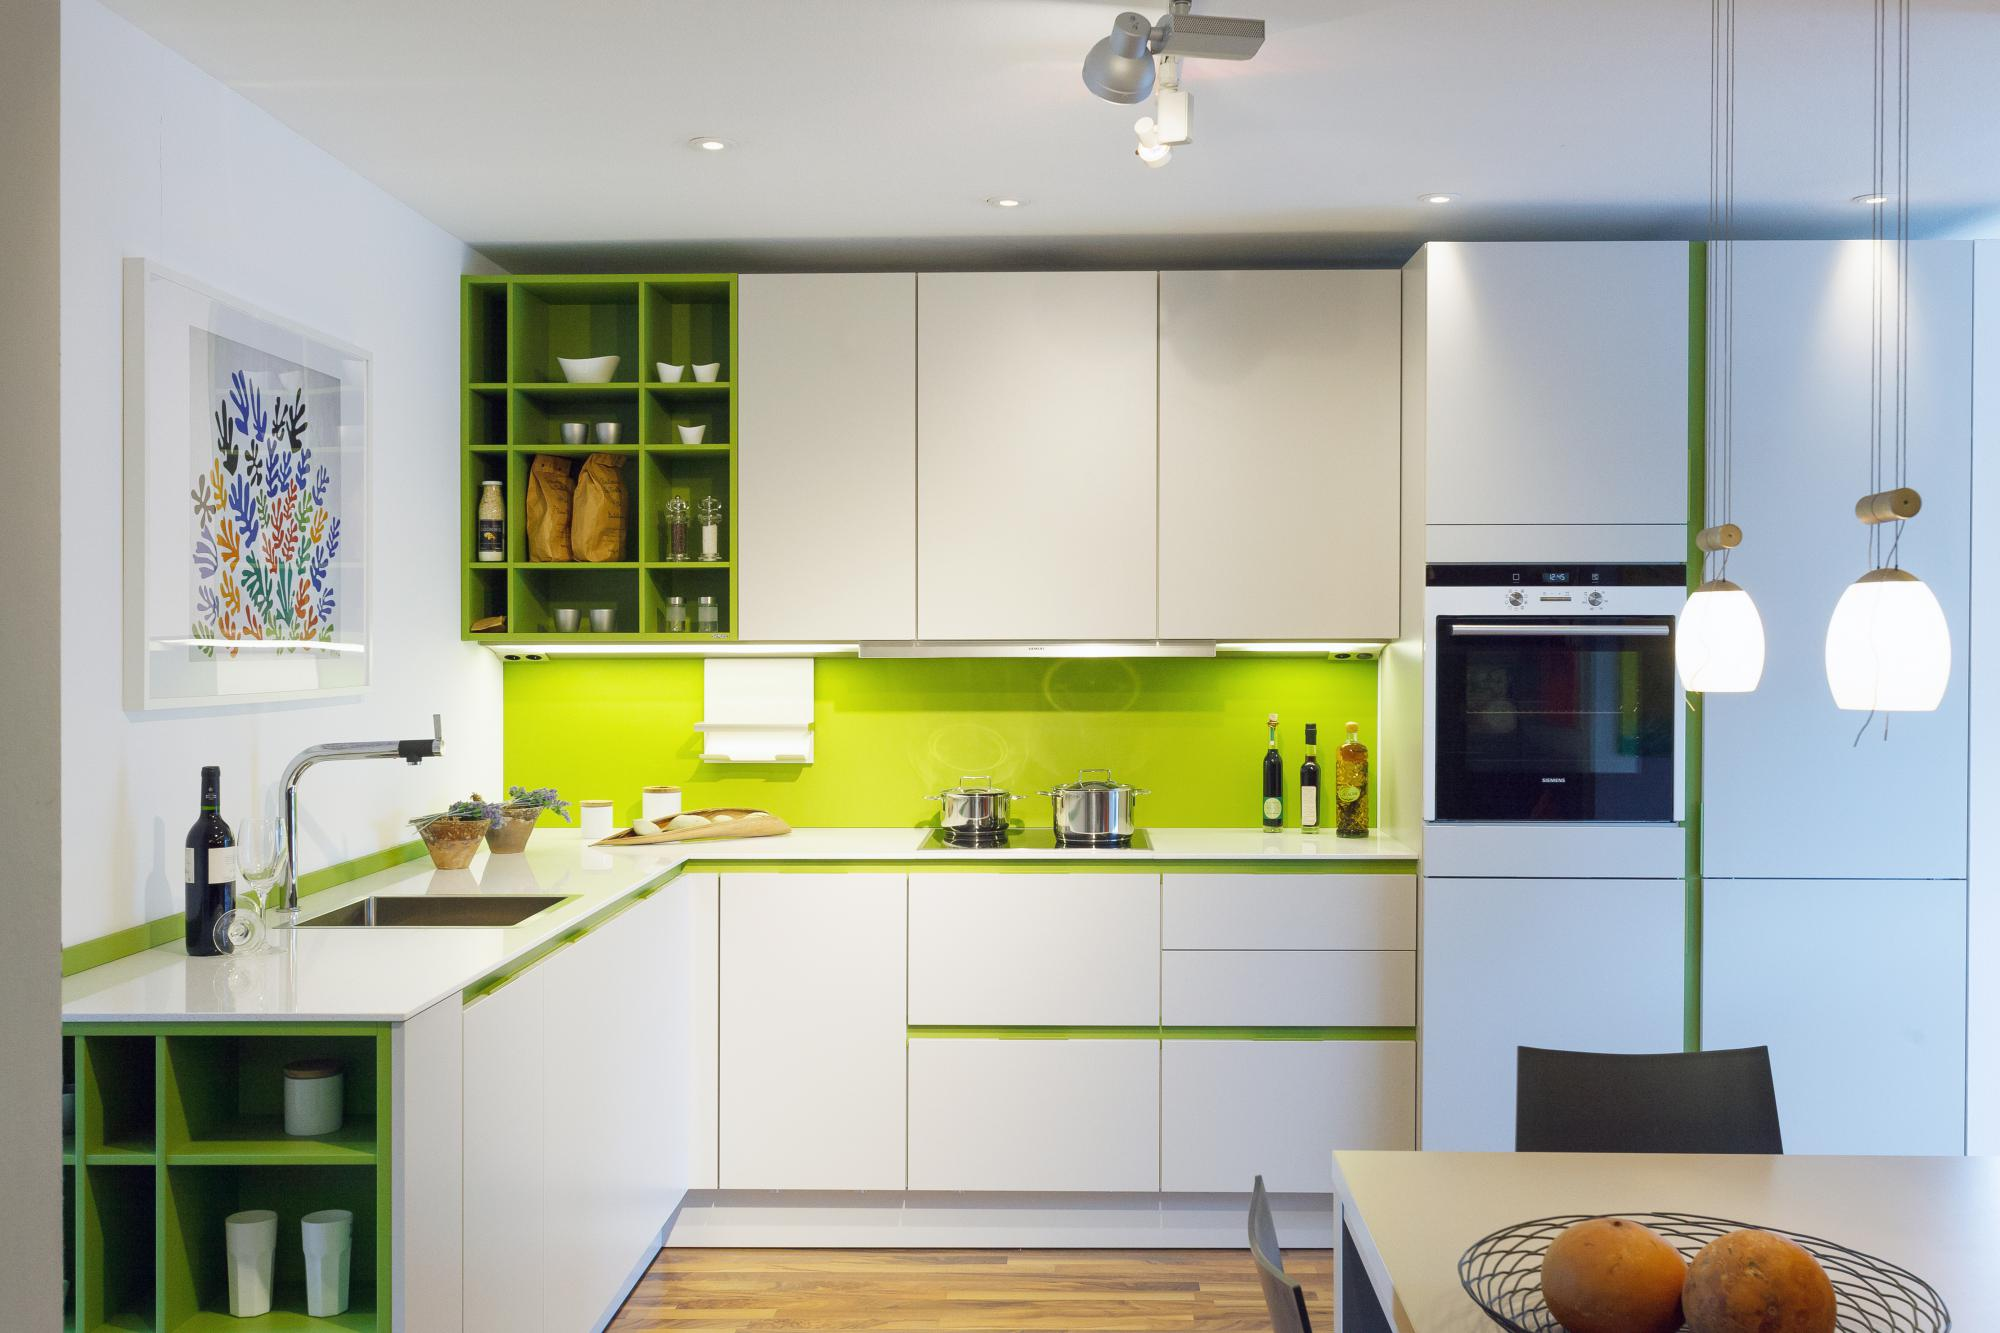 Contemporary kitchen design kitchens with a pop of color for Color design for kitchen